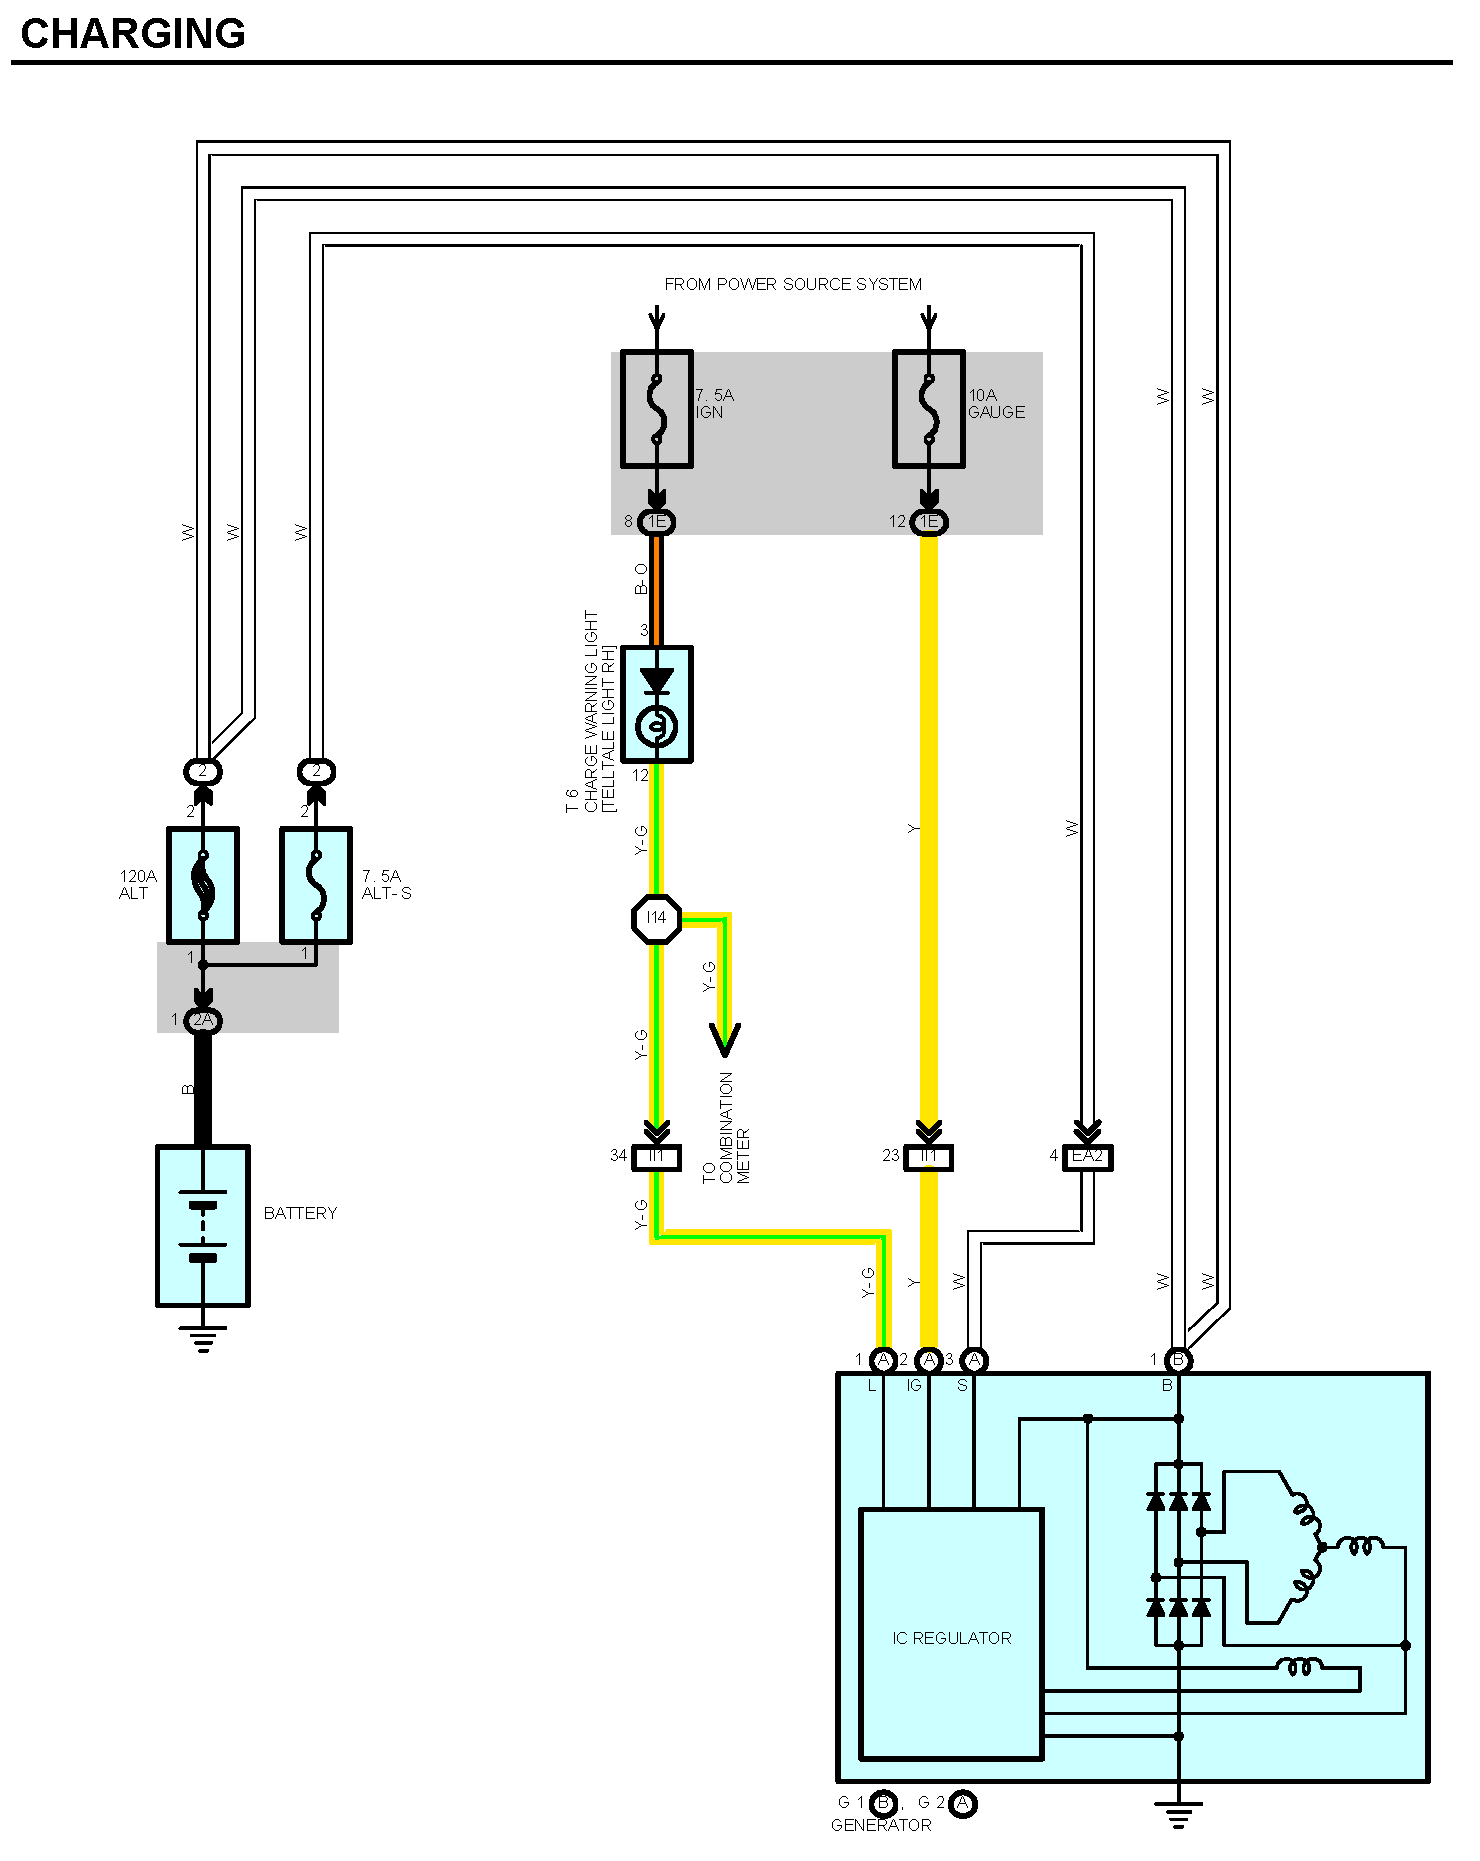 The below wiring diagram taken from the JZA80 TSRM shows the general wiring  arrangement for alternators with inbuilt regulators.